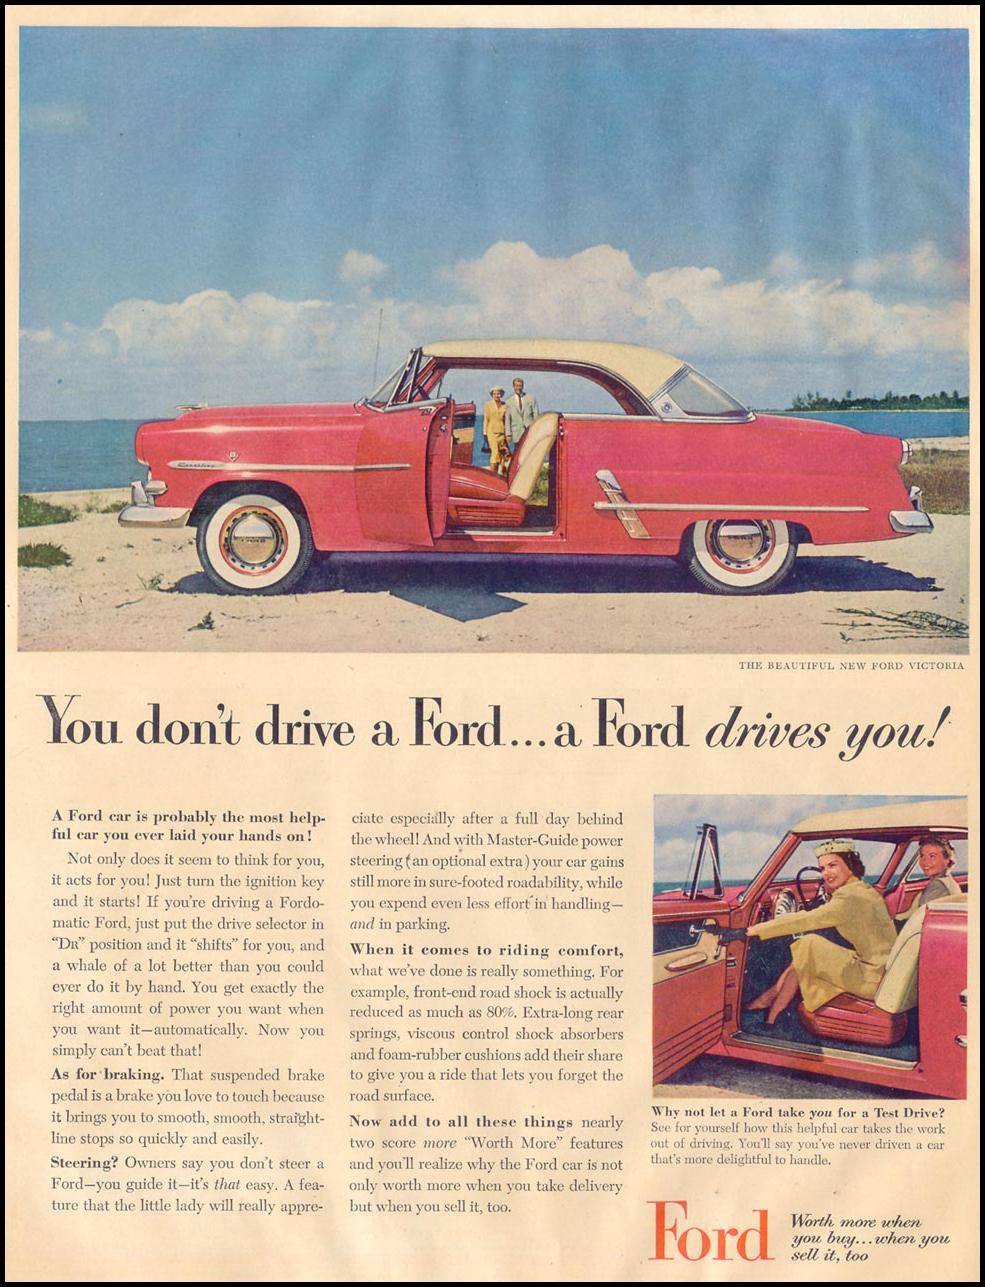 FORD AUTOMOBILES LIFE 08/17/1953 p. 14